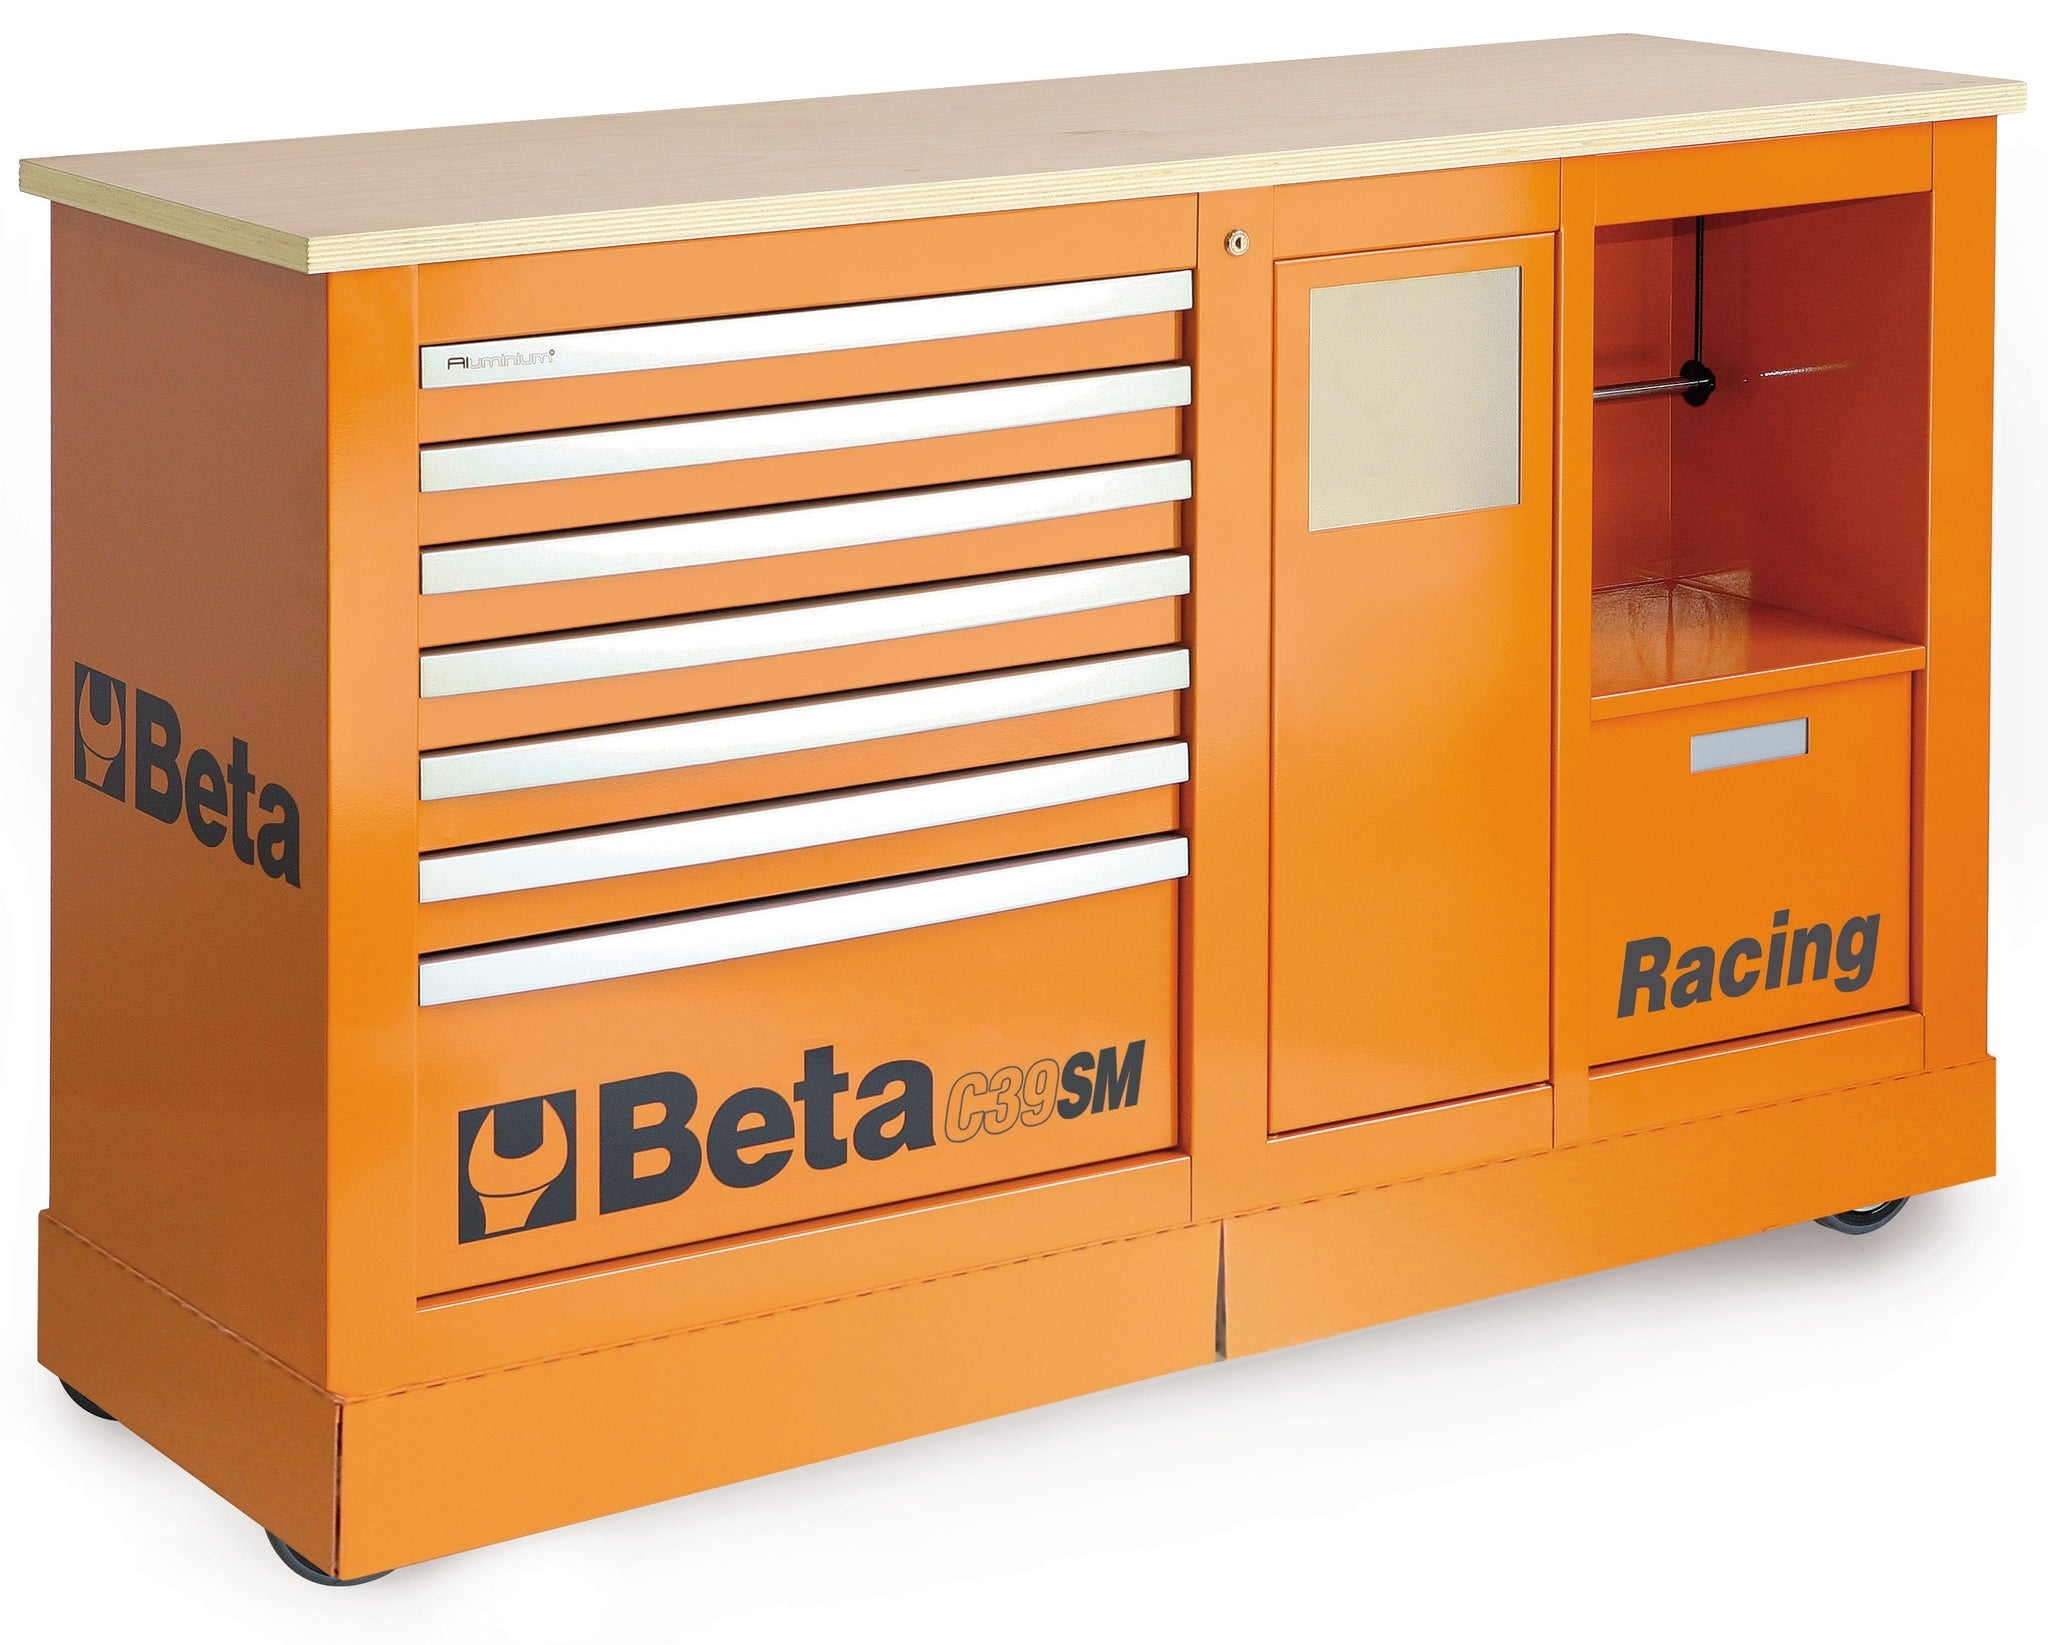 Beta Tool boxes C39SM Special mobile roller cab, Racing SM type